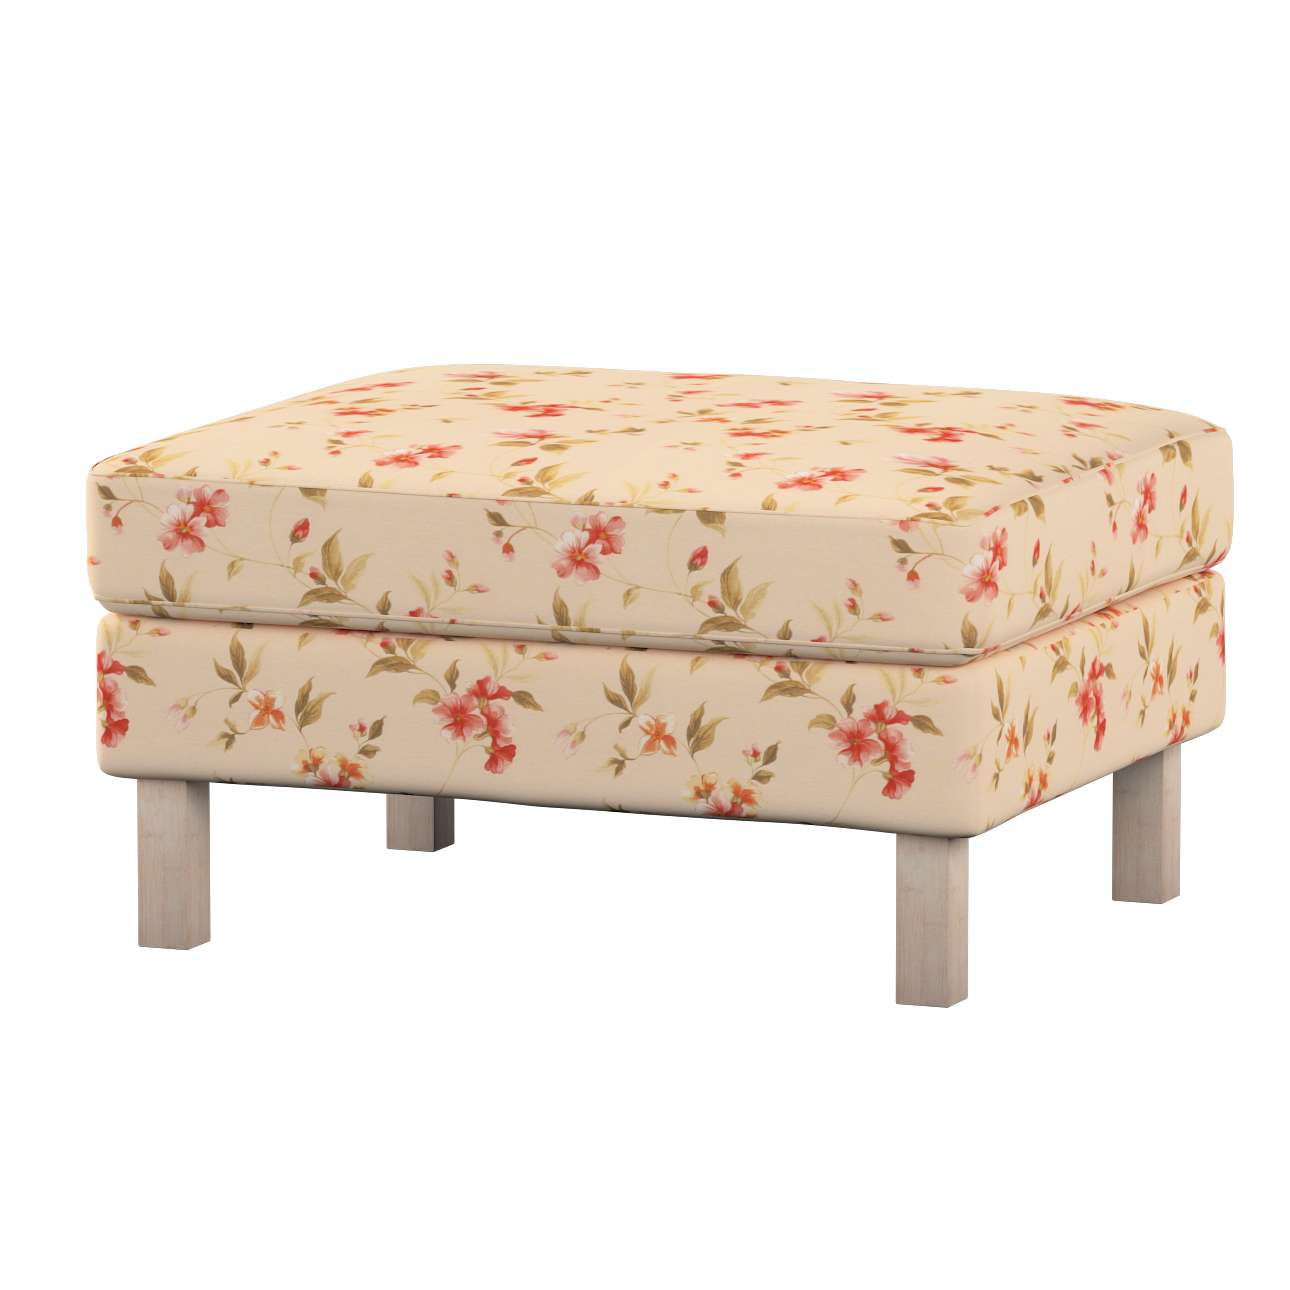 Karlstad footstool cover Karlstad footstool cover in collection Londres, fabric: 124-05